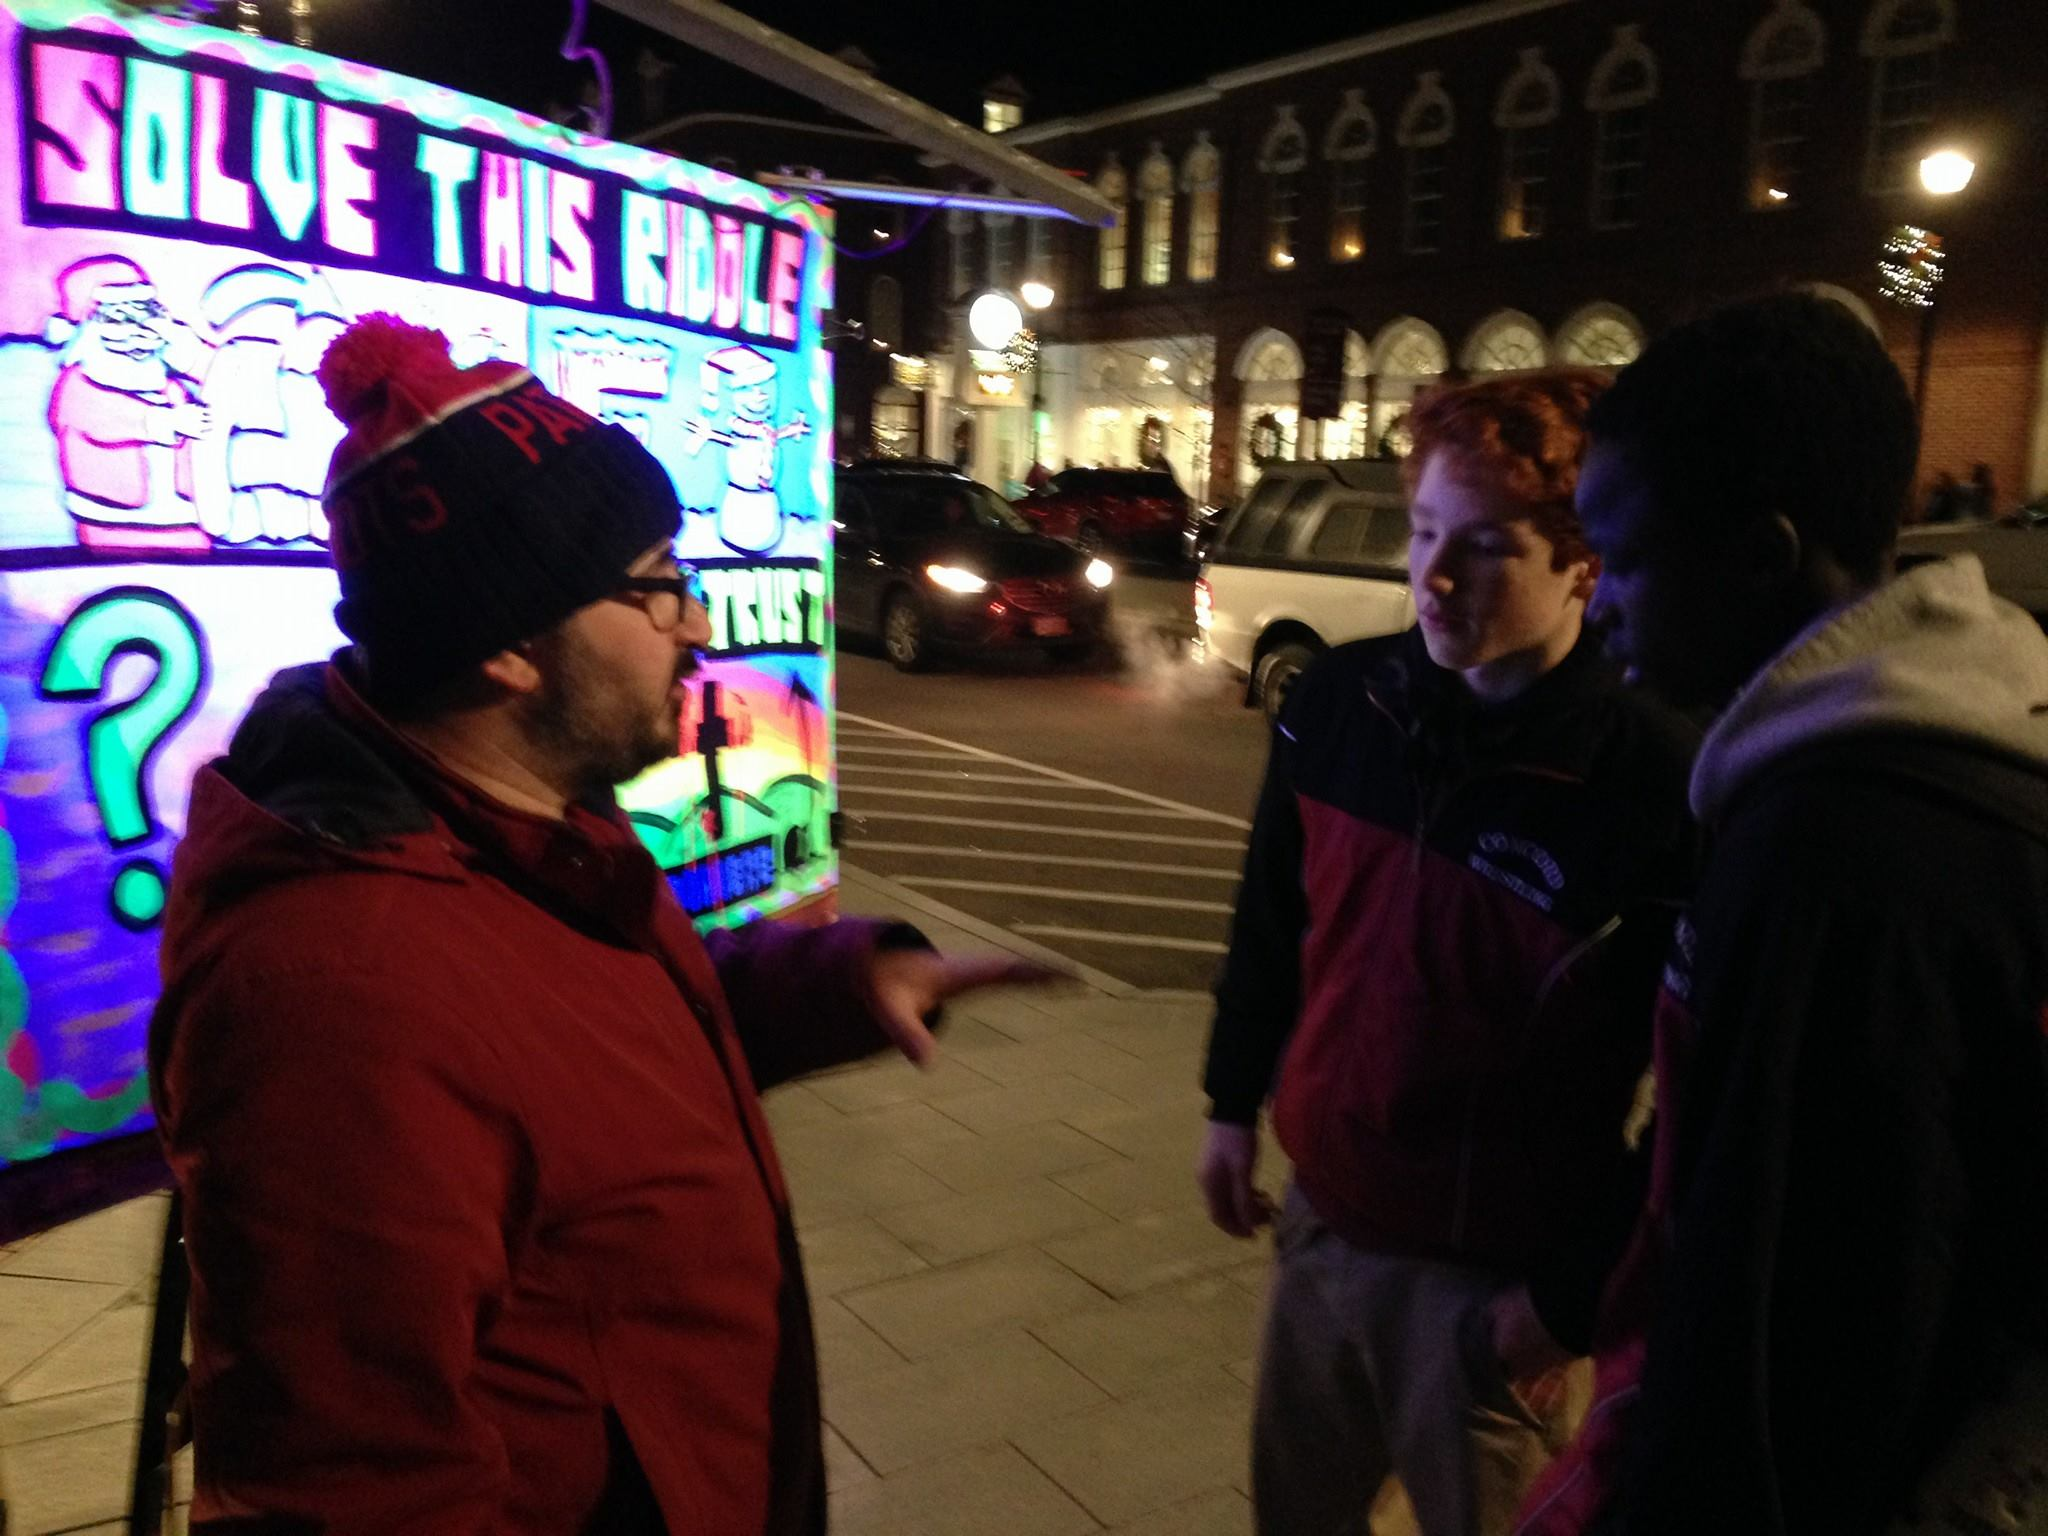 It was worth freezing outside to talk to nice folks, like these high-schoolers!